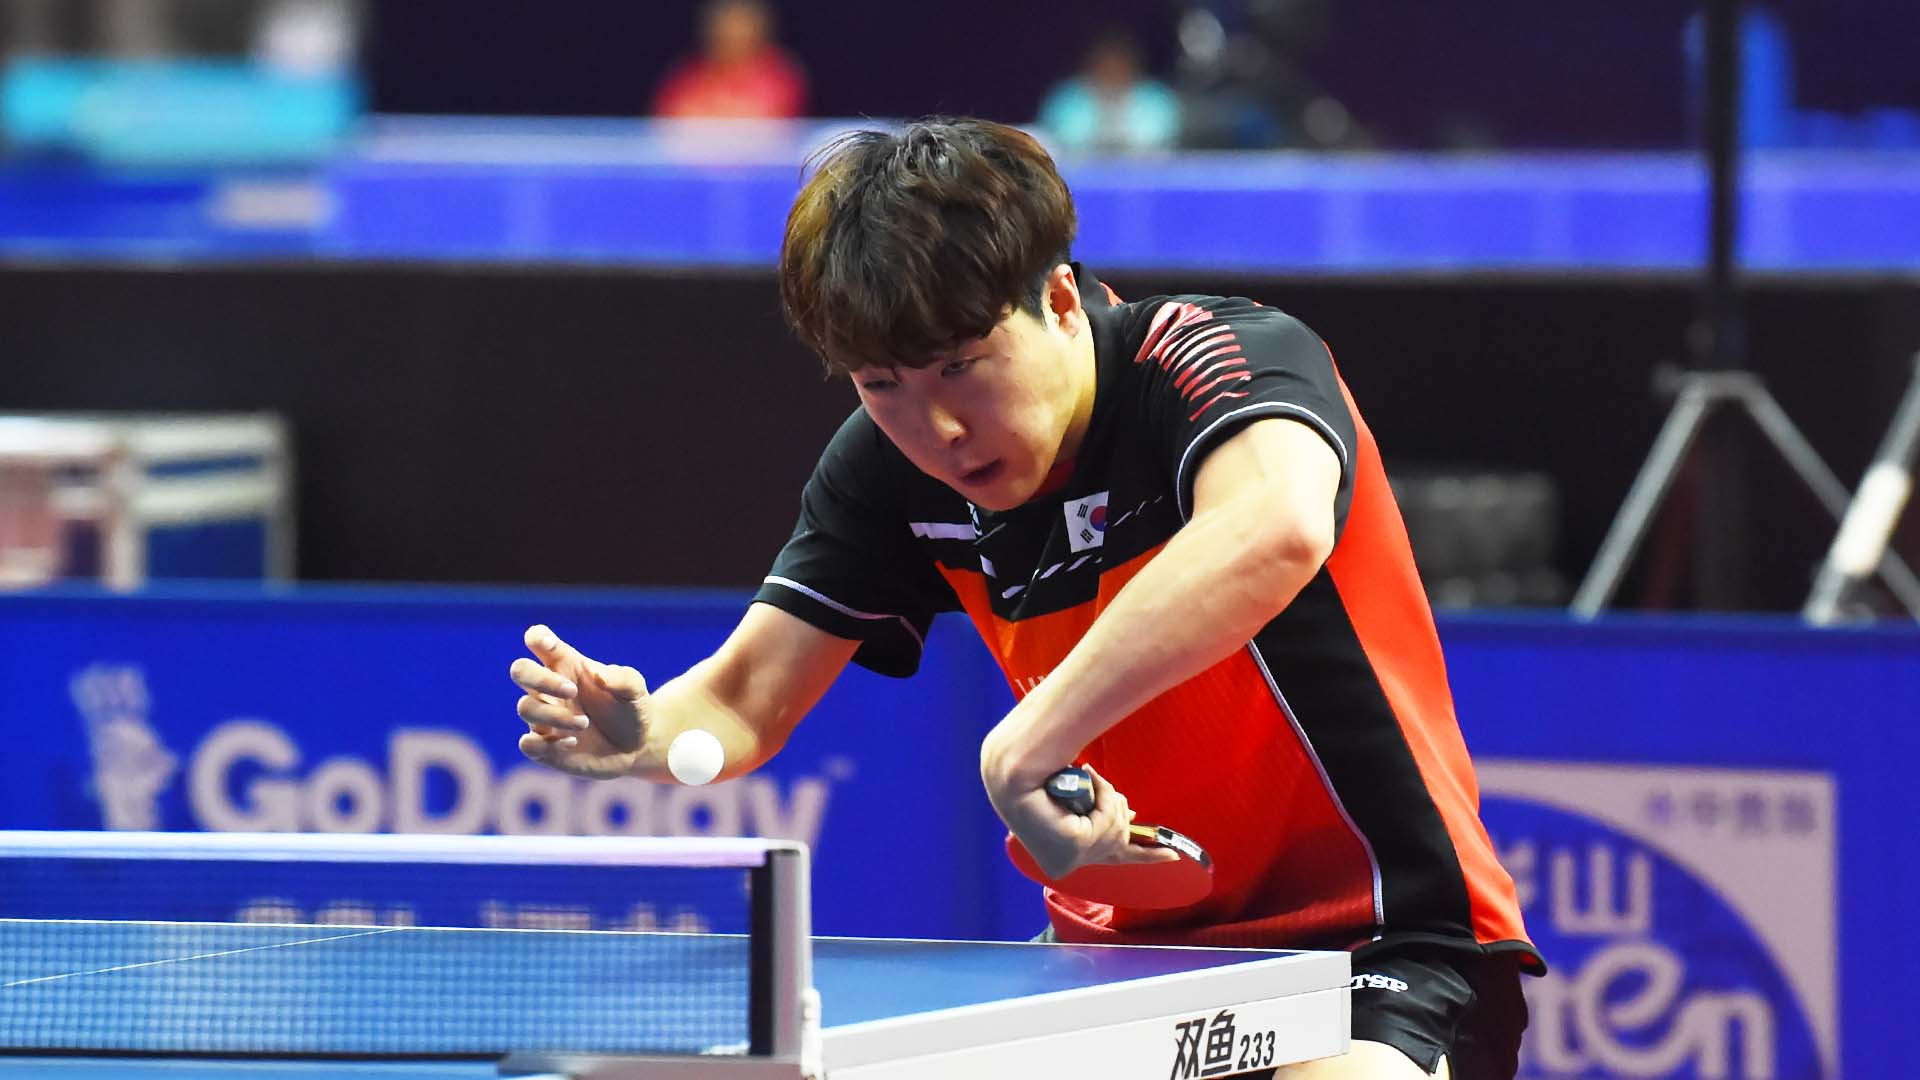 Lim stuns third seed and 2012 winner Xu to reach second round at ITTF China Open